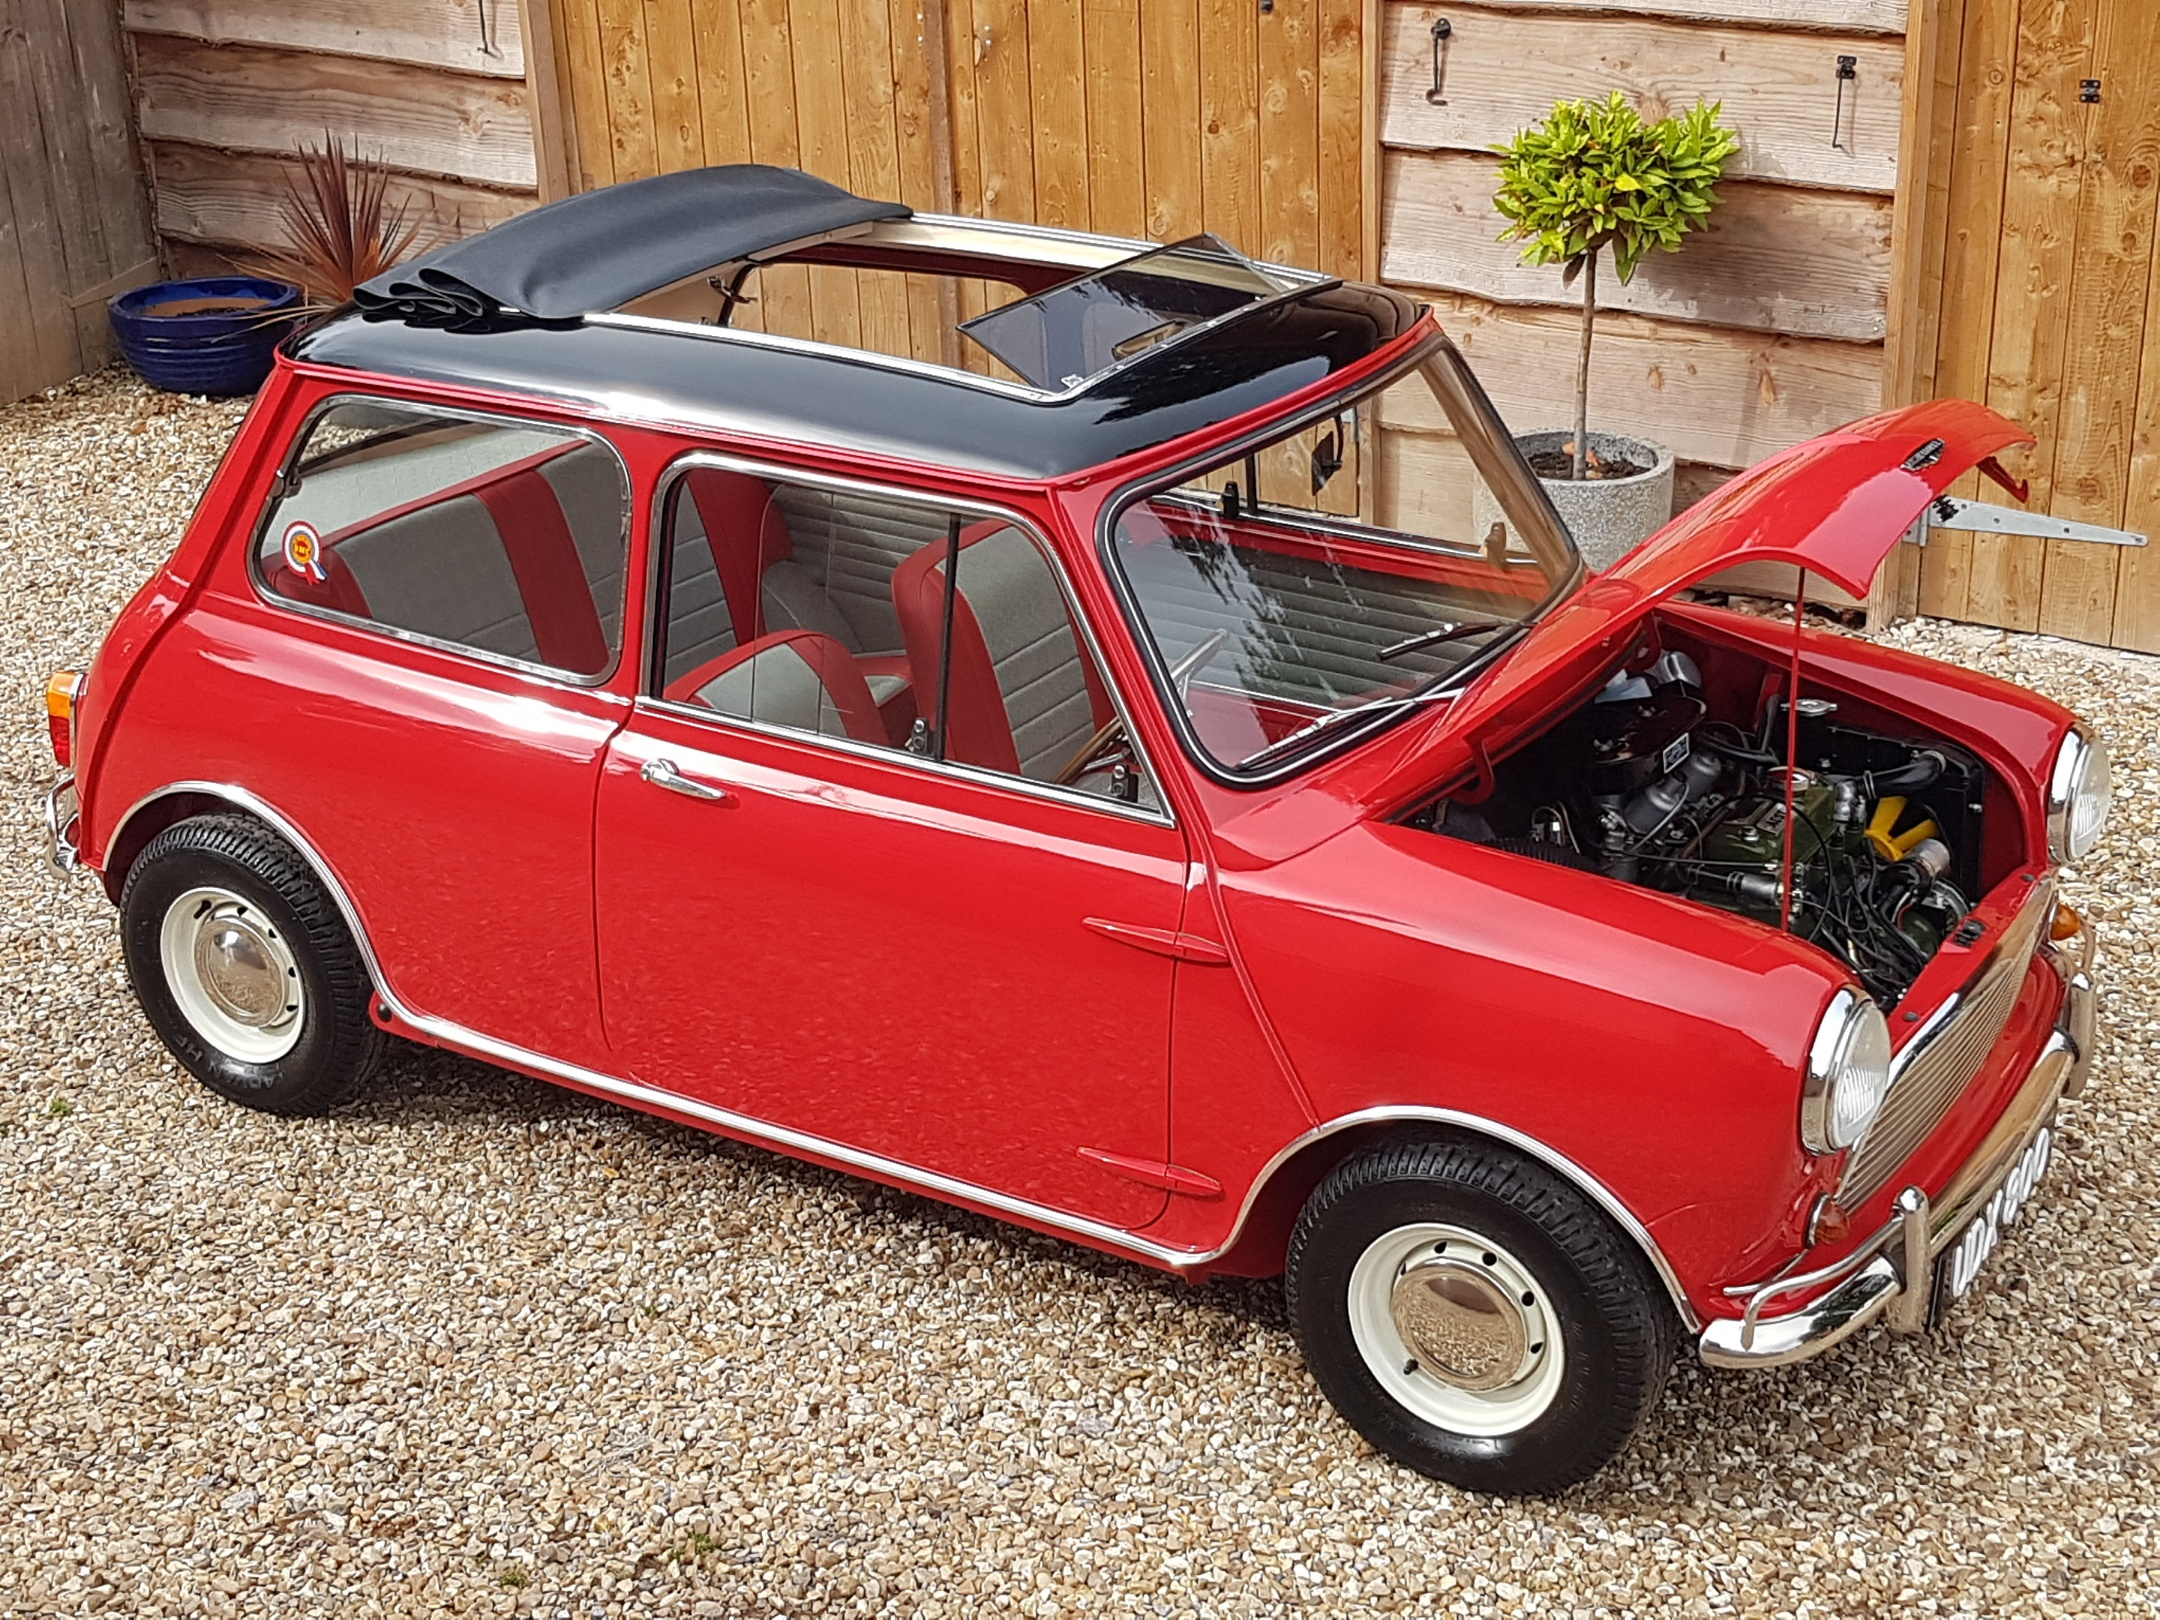 ** NOW SOLD ** Outstanding Austin Mini 998 Cooper With GT Spec Engine!